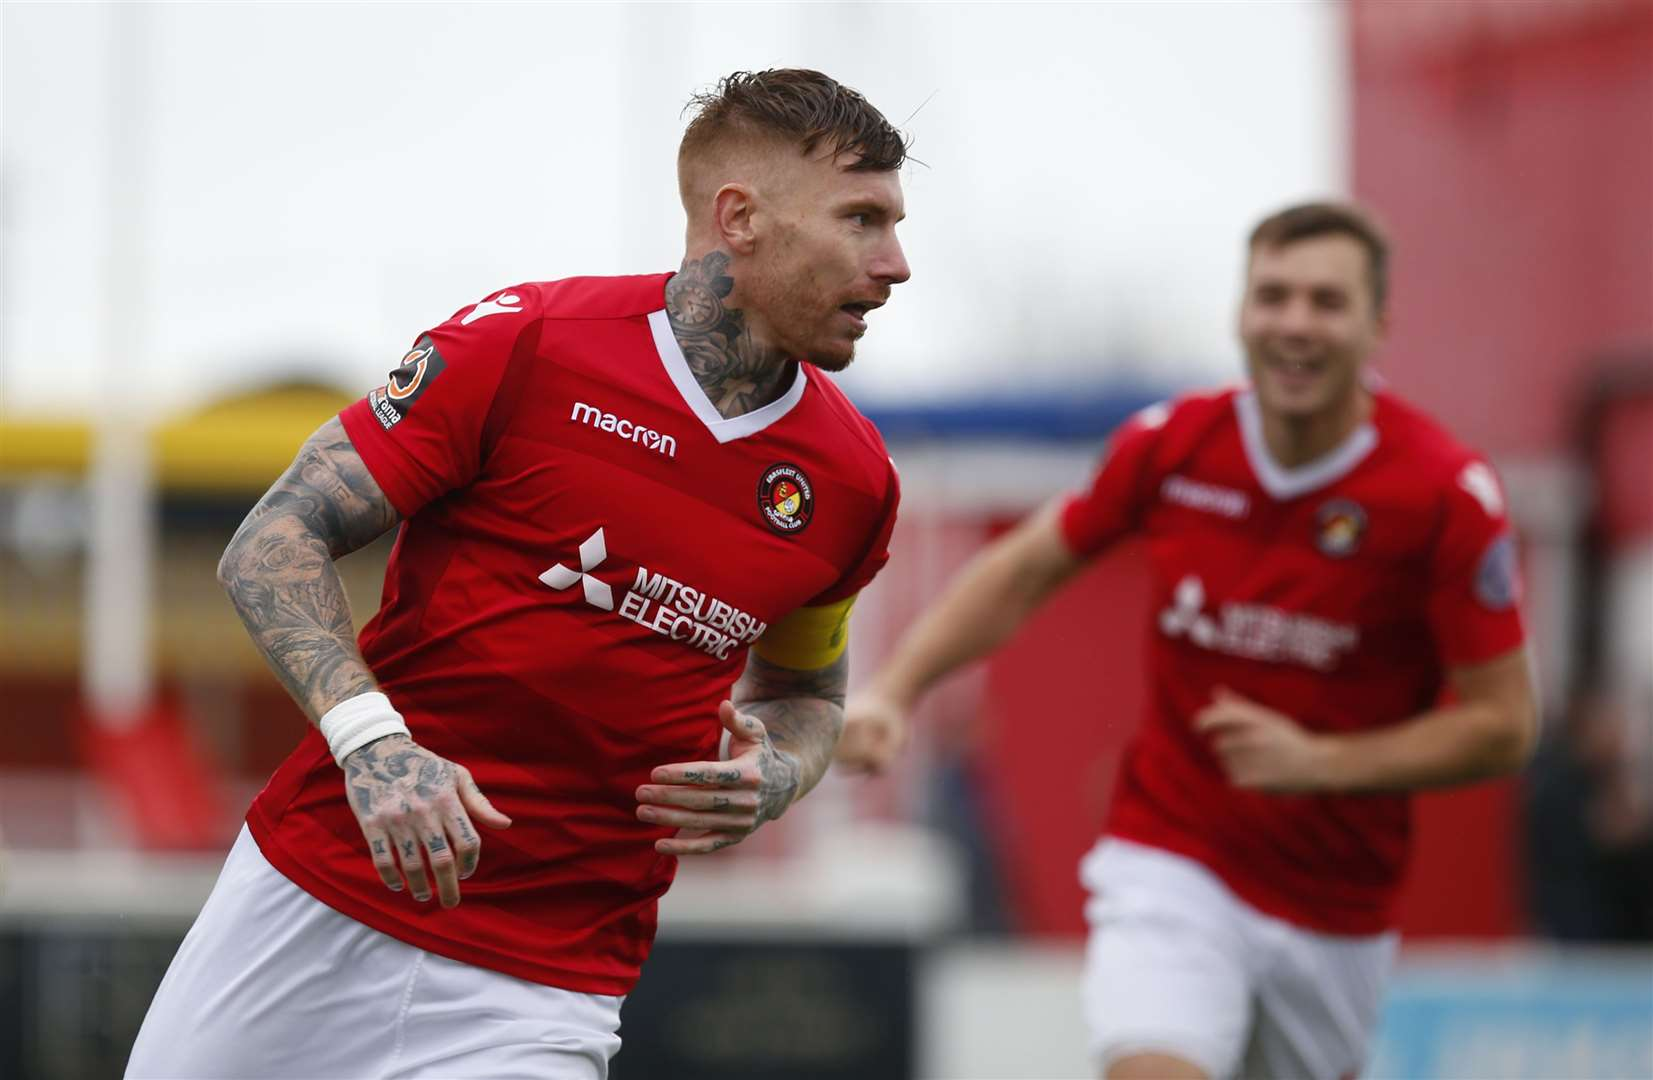 Captain Jack King celebrates a goal for Ebbsfleet Picture: Andy Jones